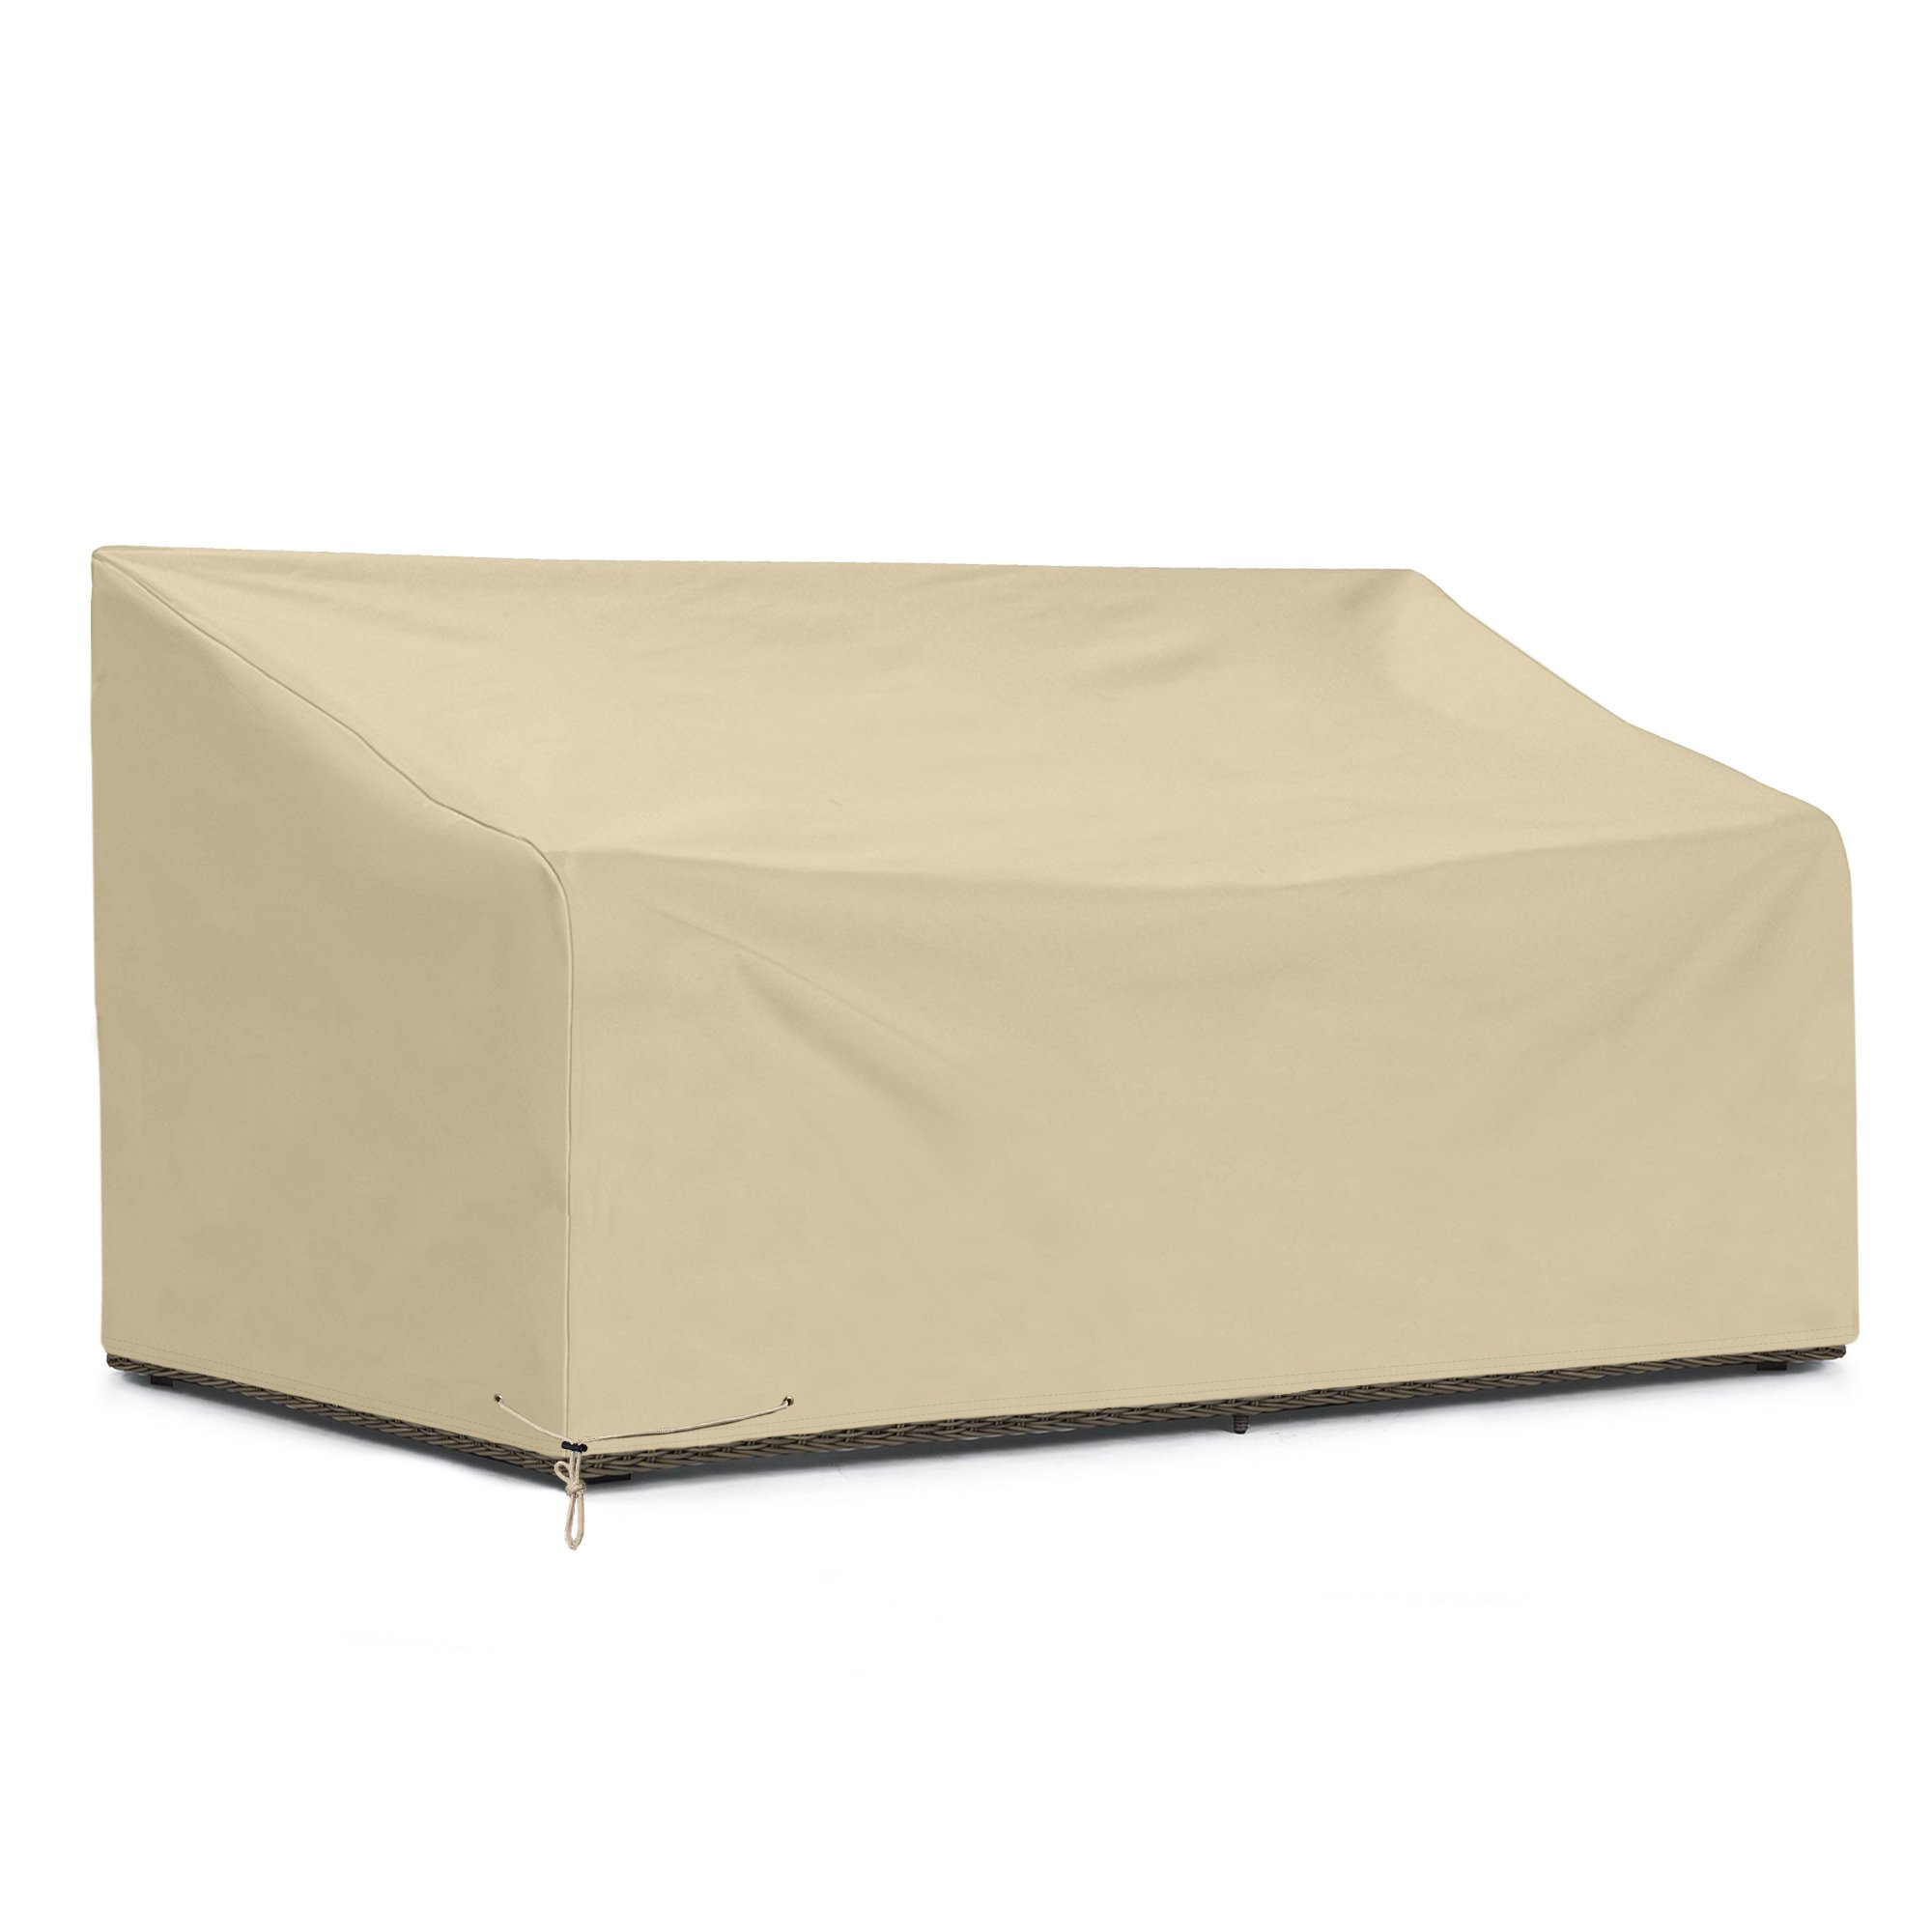 SunPatio Outdoor Deep Sofa Cover, 80'' L x 39'' W x 32''/22'' H, Patio Furniture Cover, Durable and All Weather Protection, Beige by SunPatio